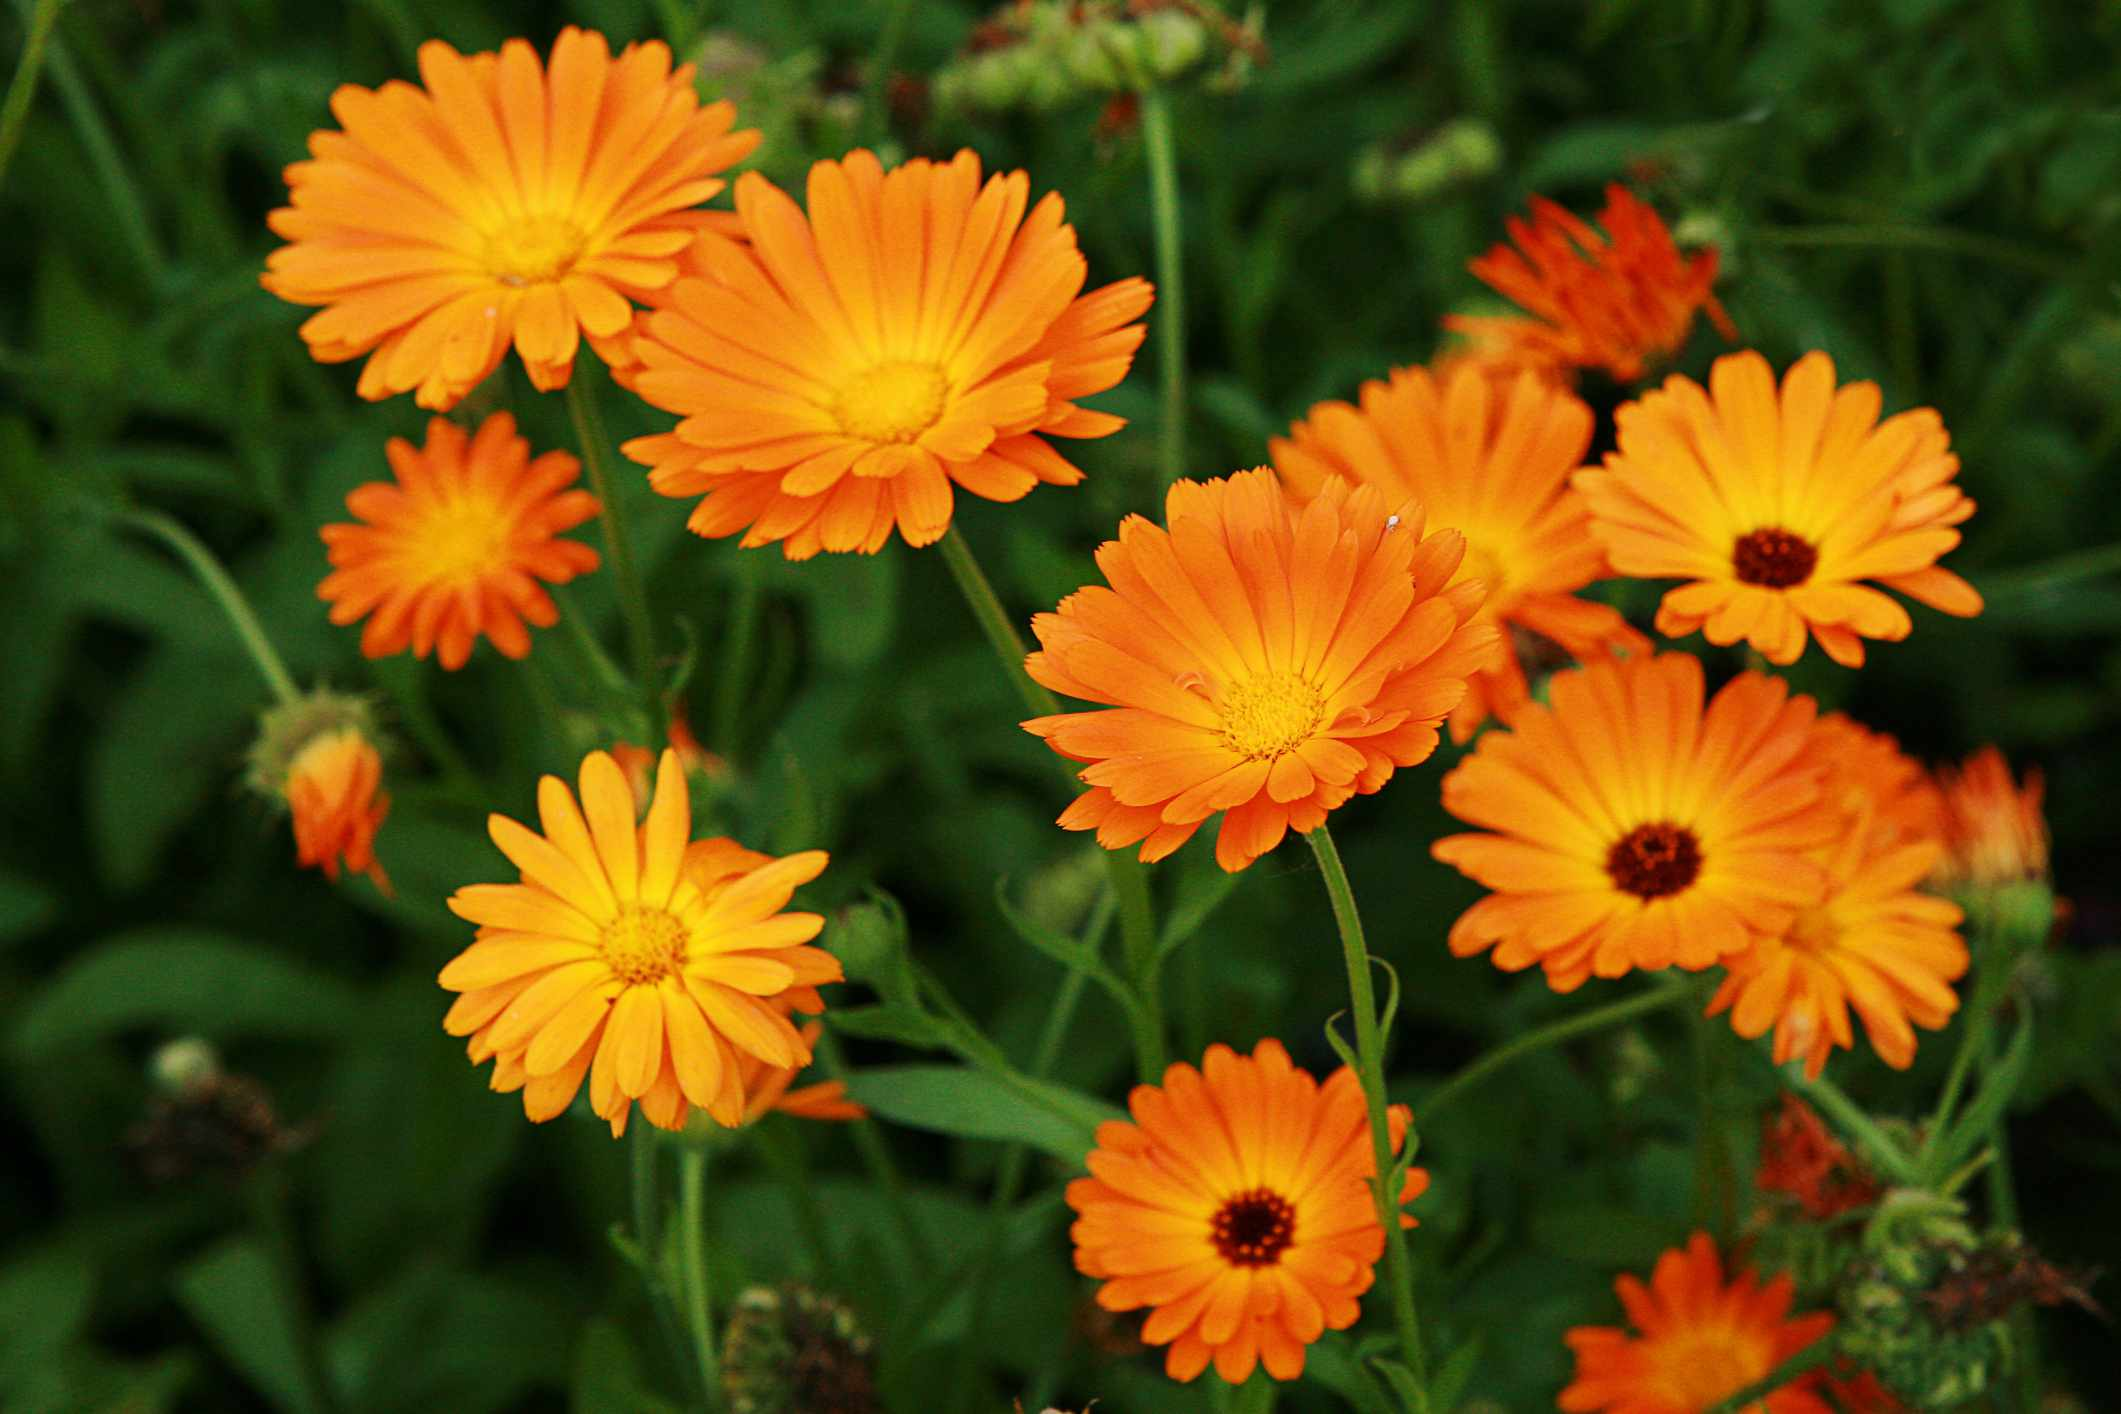 Close-up of orange and yellow calendulas in a garden